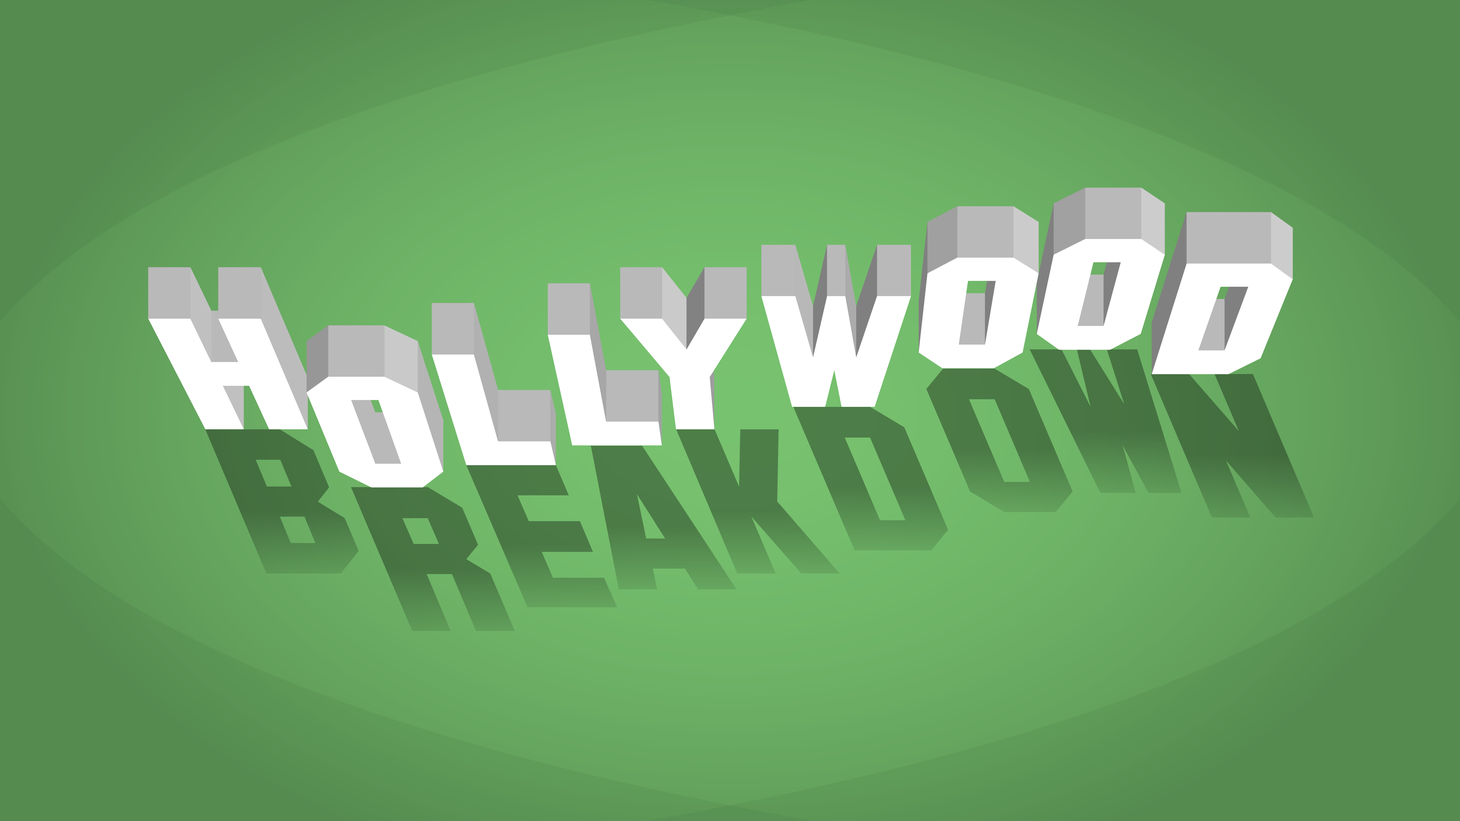 From the highly unpopular popular film category idea to the hosting debacle to the Academy's latest decision to relegate the presentation of four awards to commercial breaks, the Academy has stumbled one time after another en route to this year's…